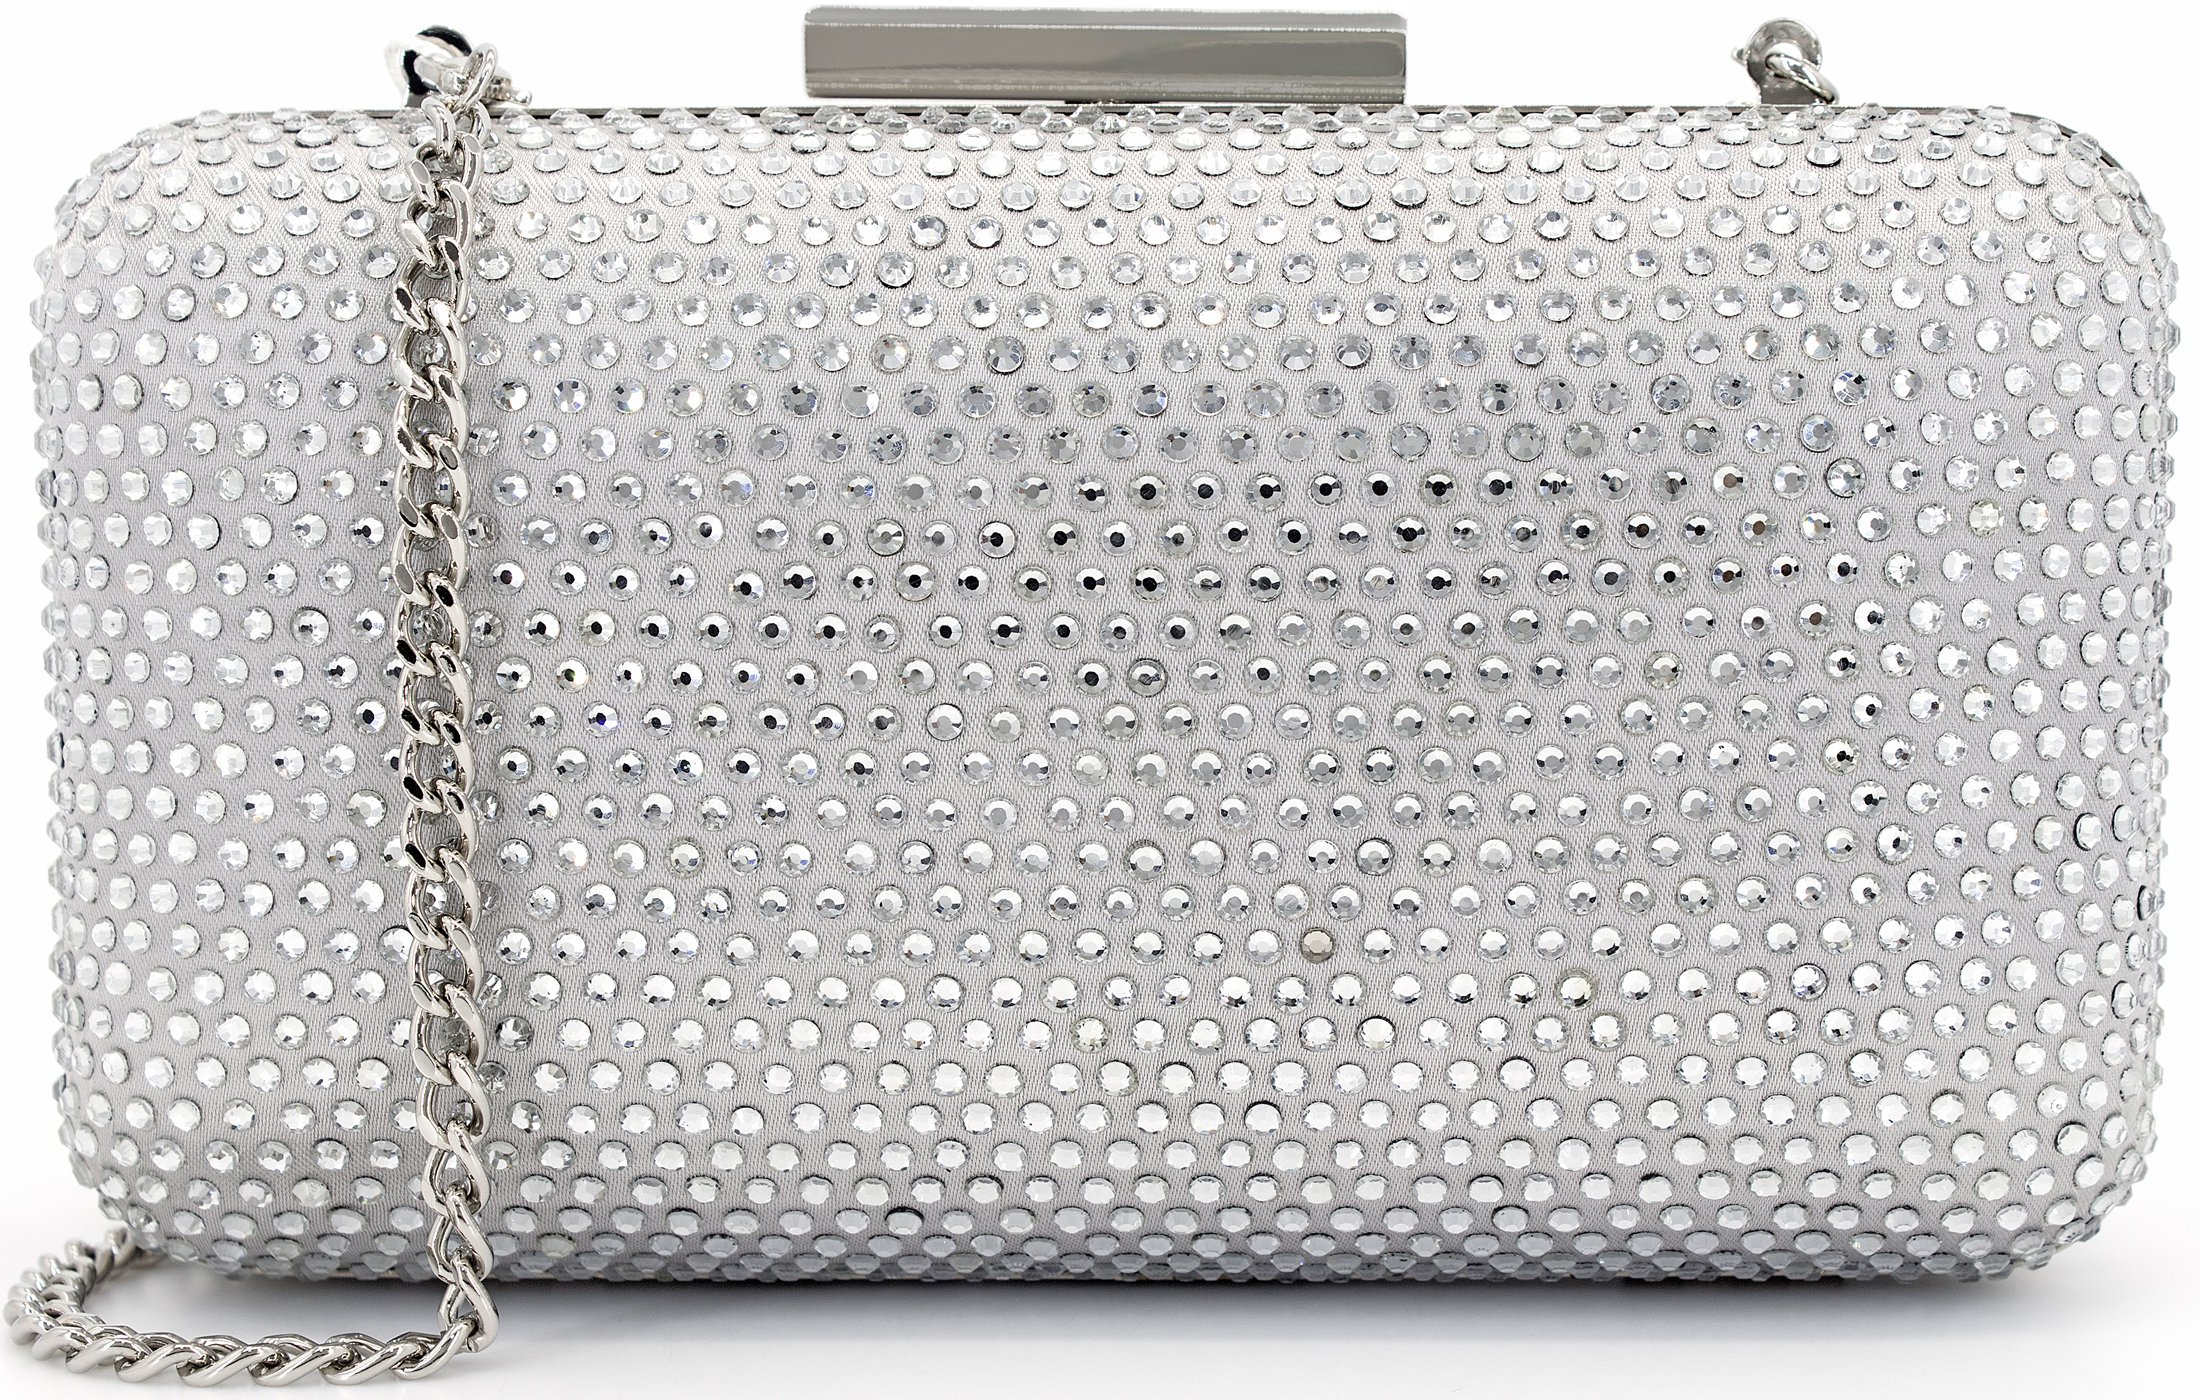 Dexmay Womens Evening Bag for Prom Cocktail Wedding Party Rhinestone Crystal Clutch Purse Silver